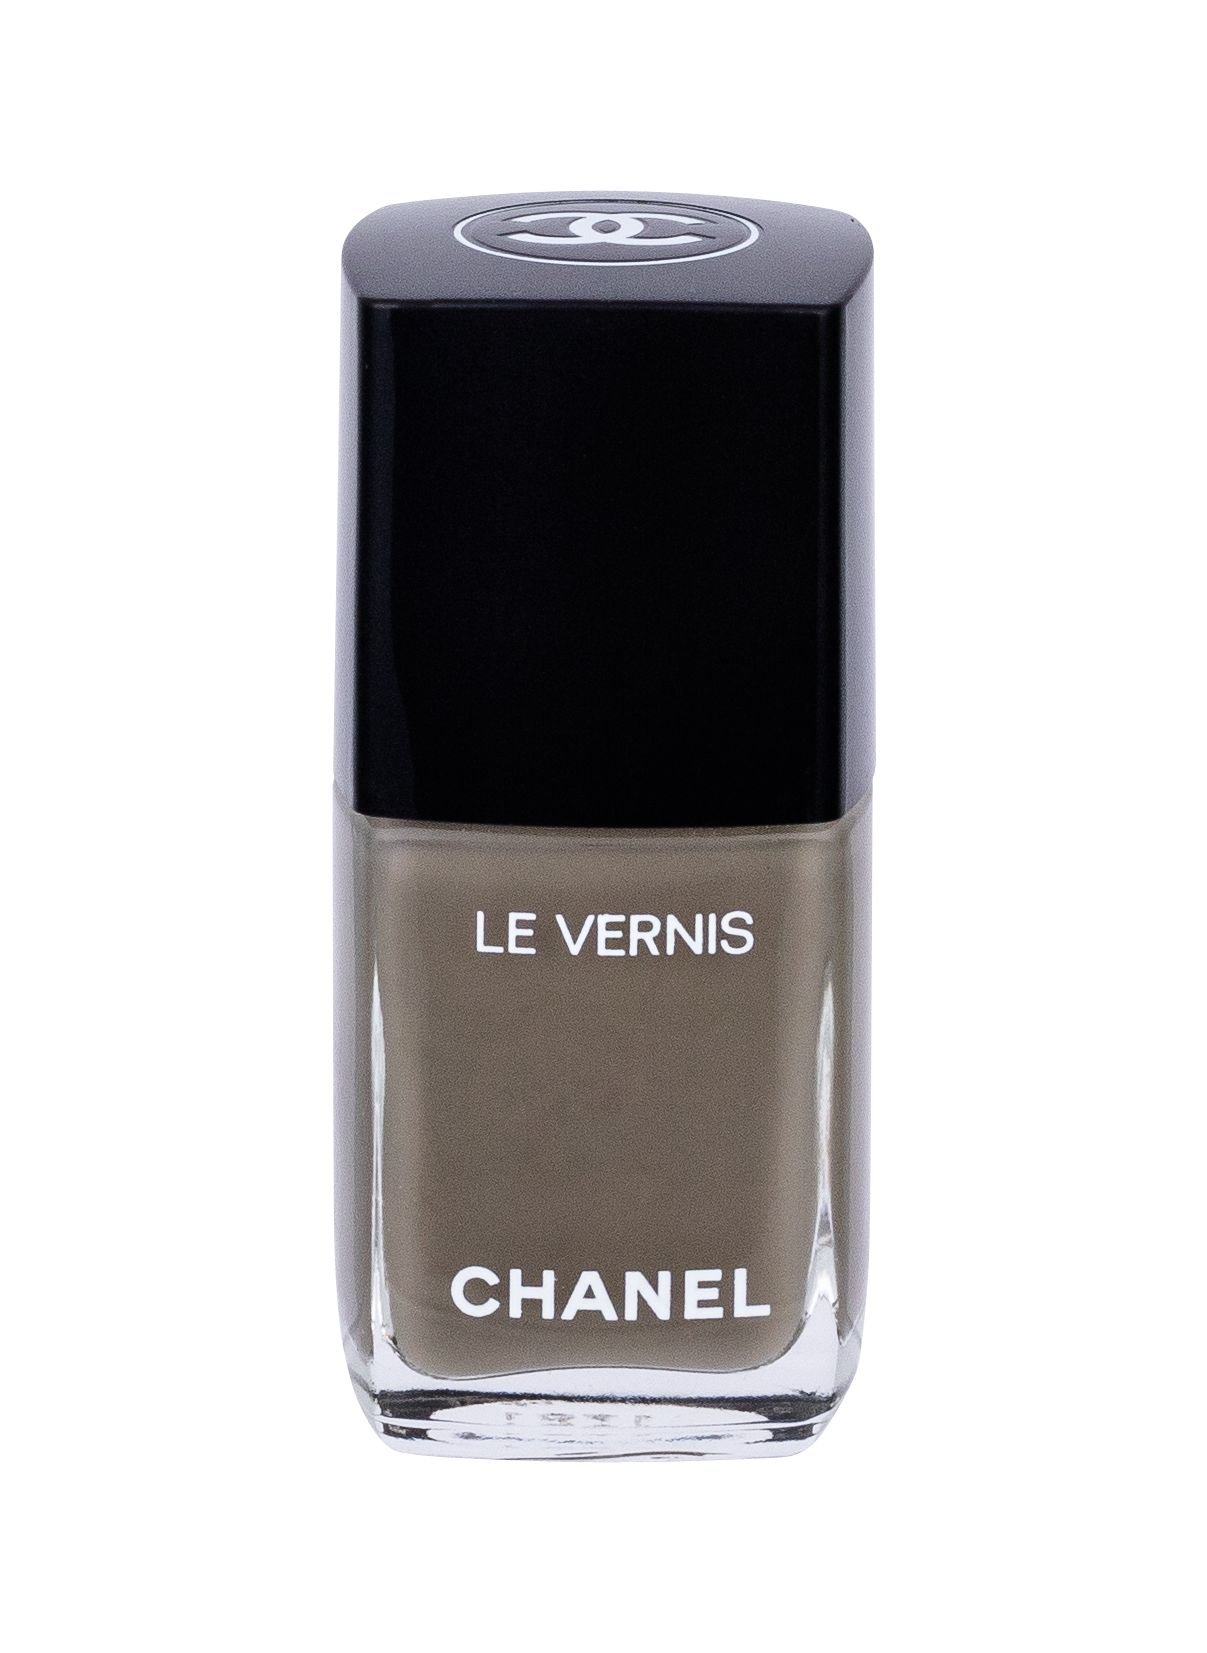 Chanel Le Vernis Nail Polish 13ml 520 Garconne